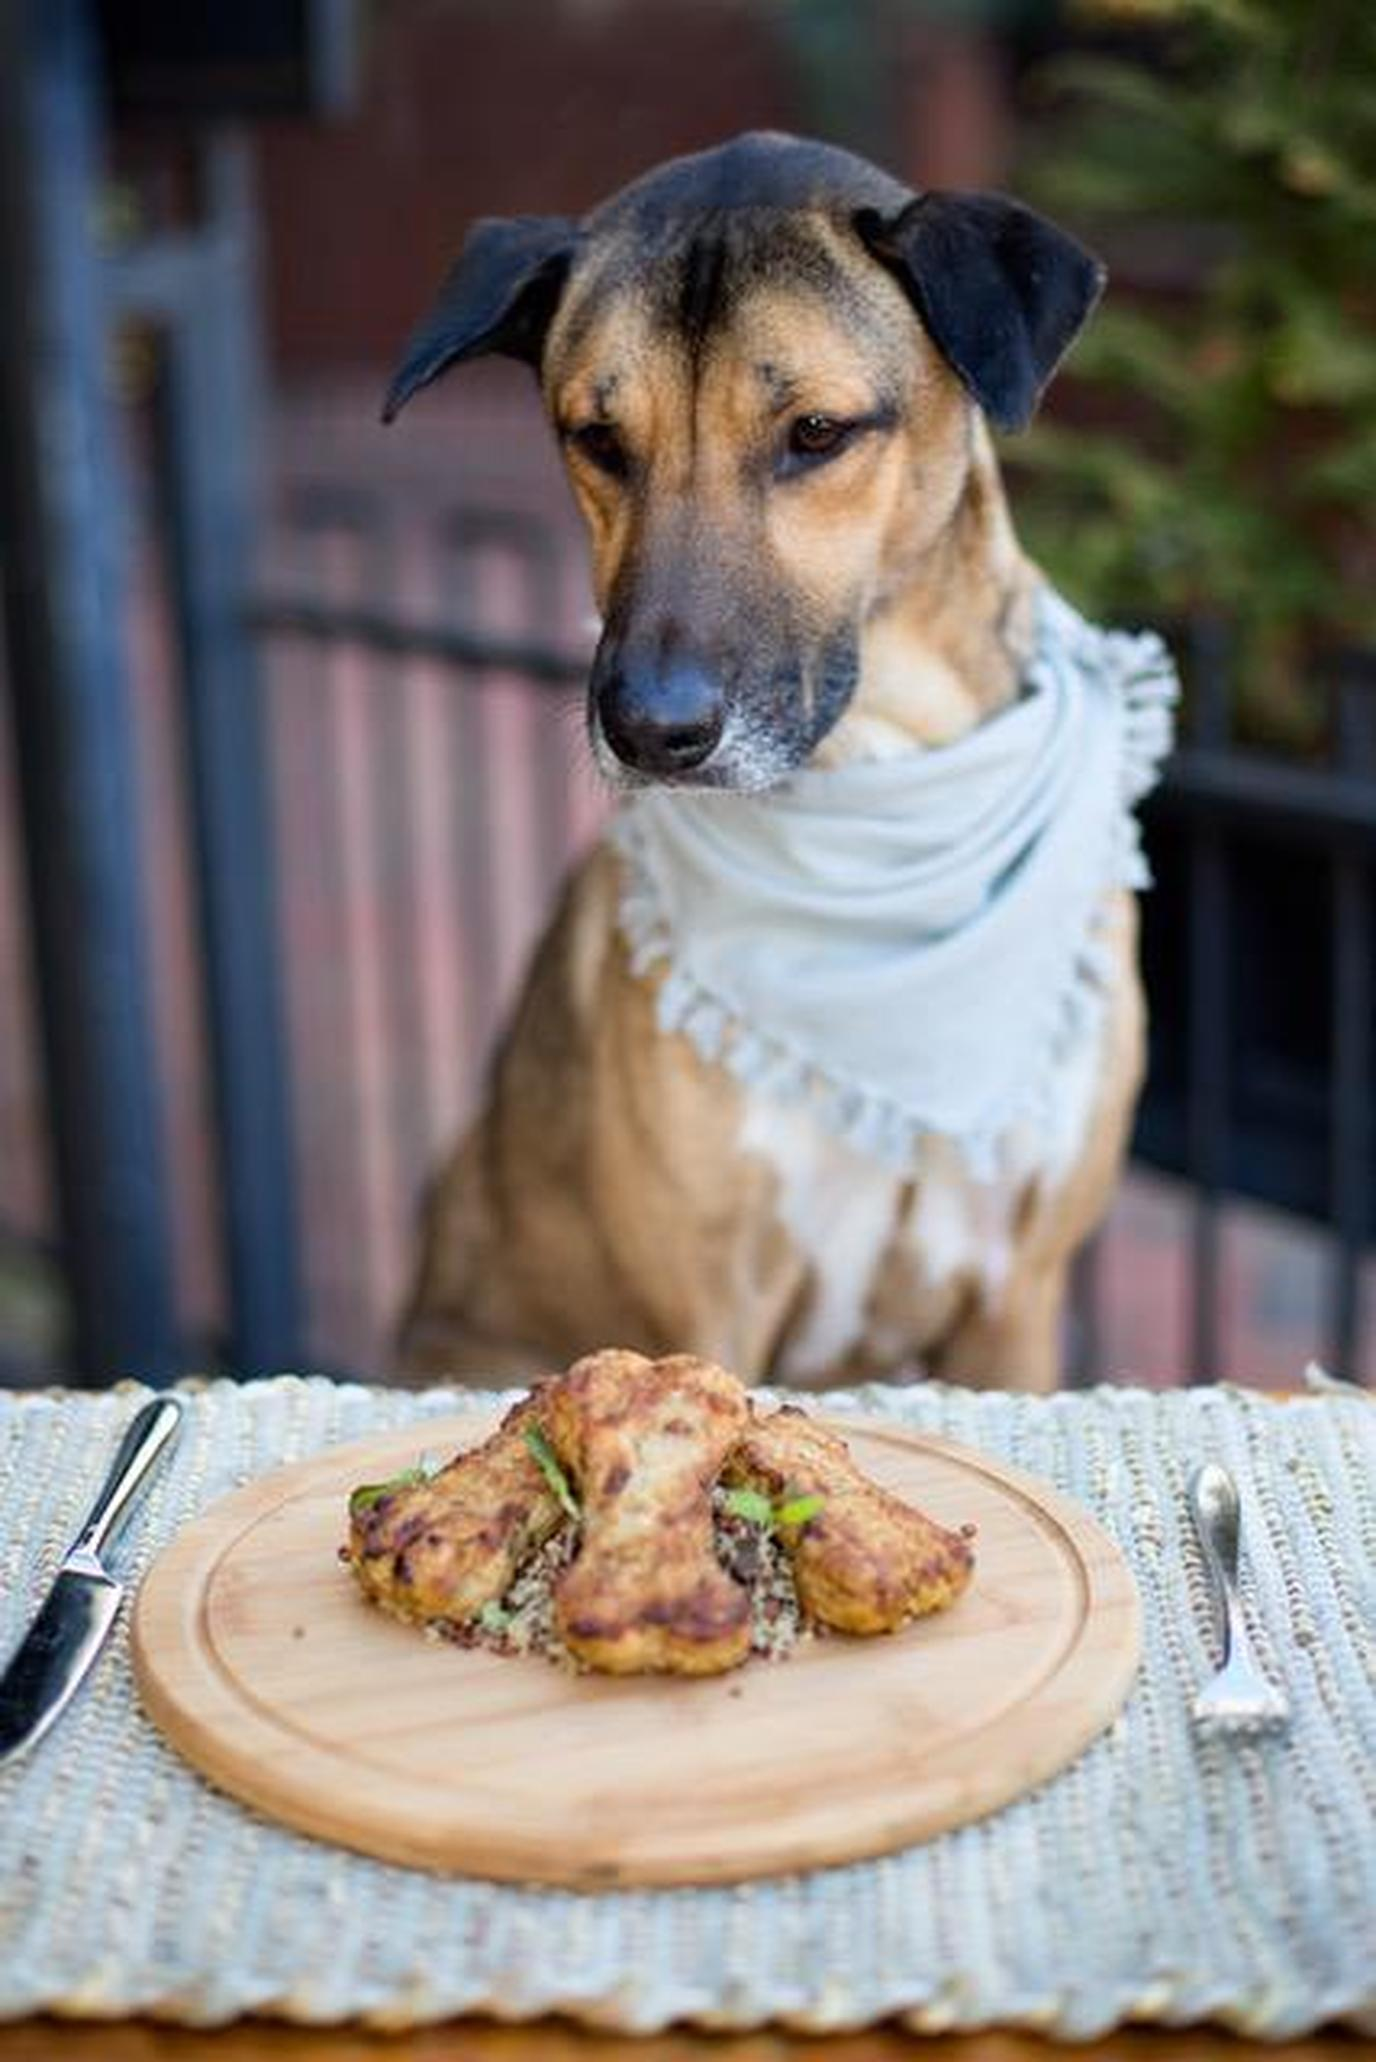 Posana is a fine-dining pet-friendly restaurant in Asheville.